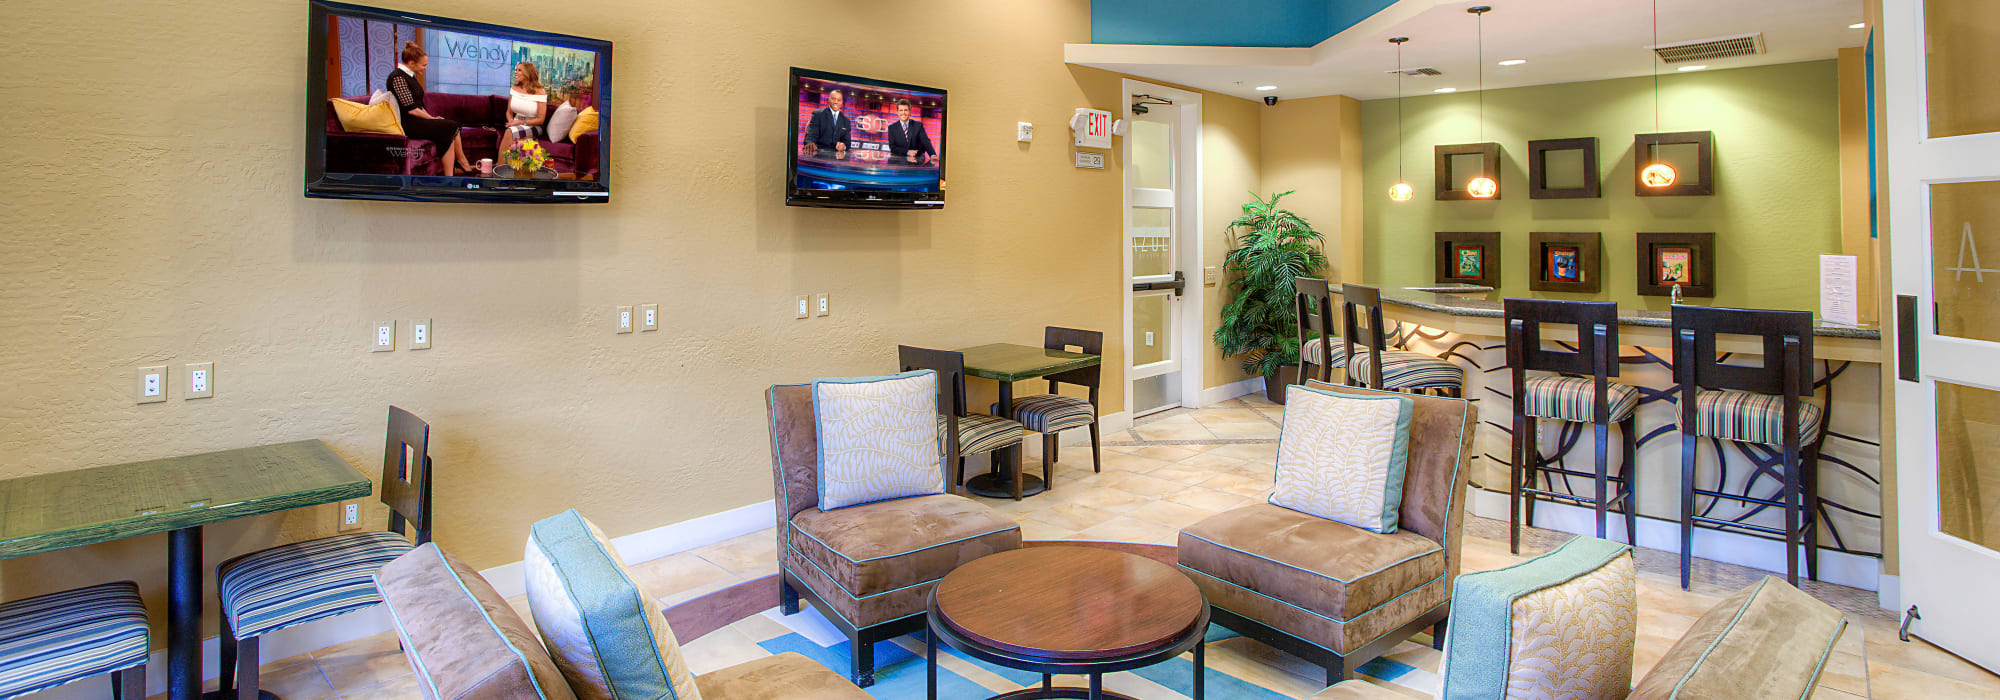 Resident clubhouse with TVs at Azul at Spectrum in Gilbert, Arizona